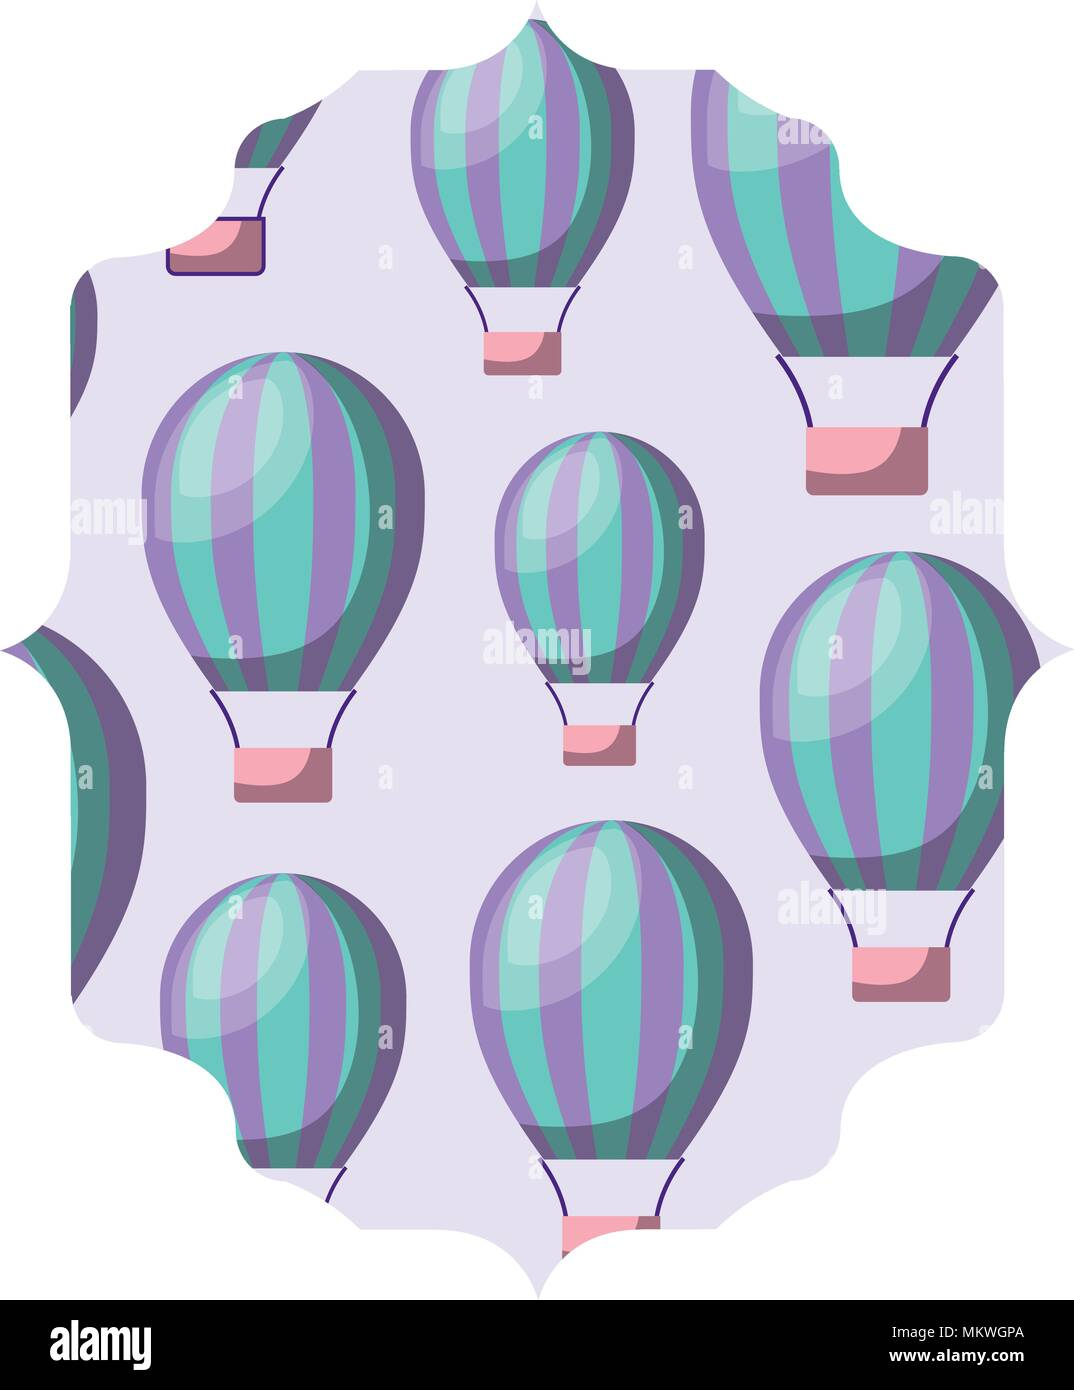 Arabic Frame With Hot Air Balloons Pattern Over White Background